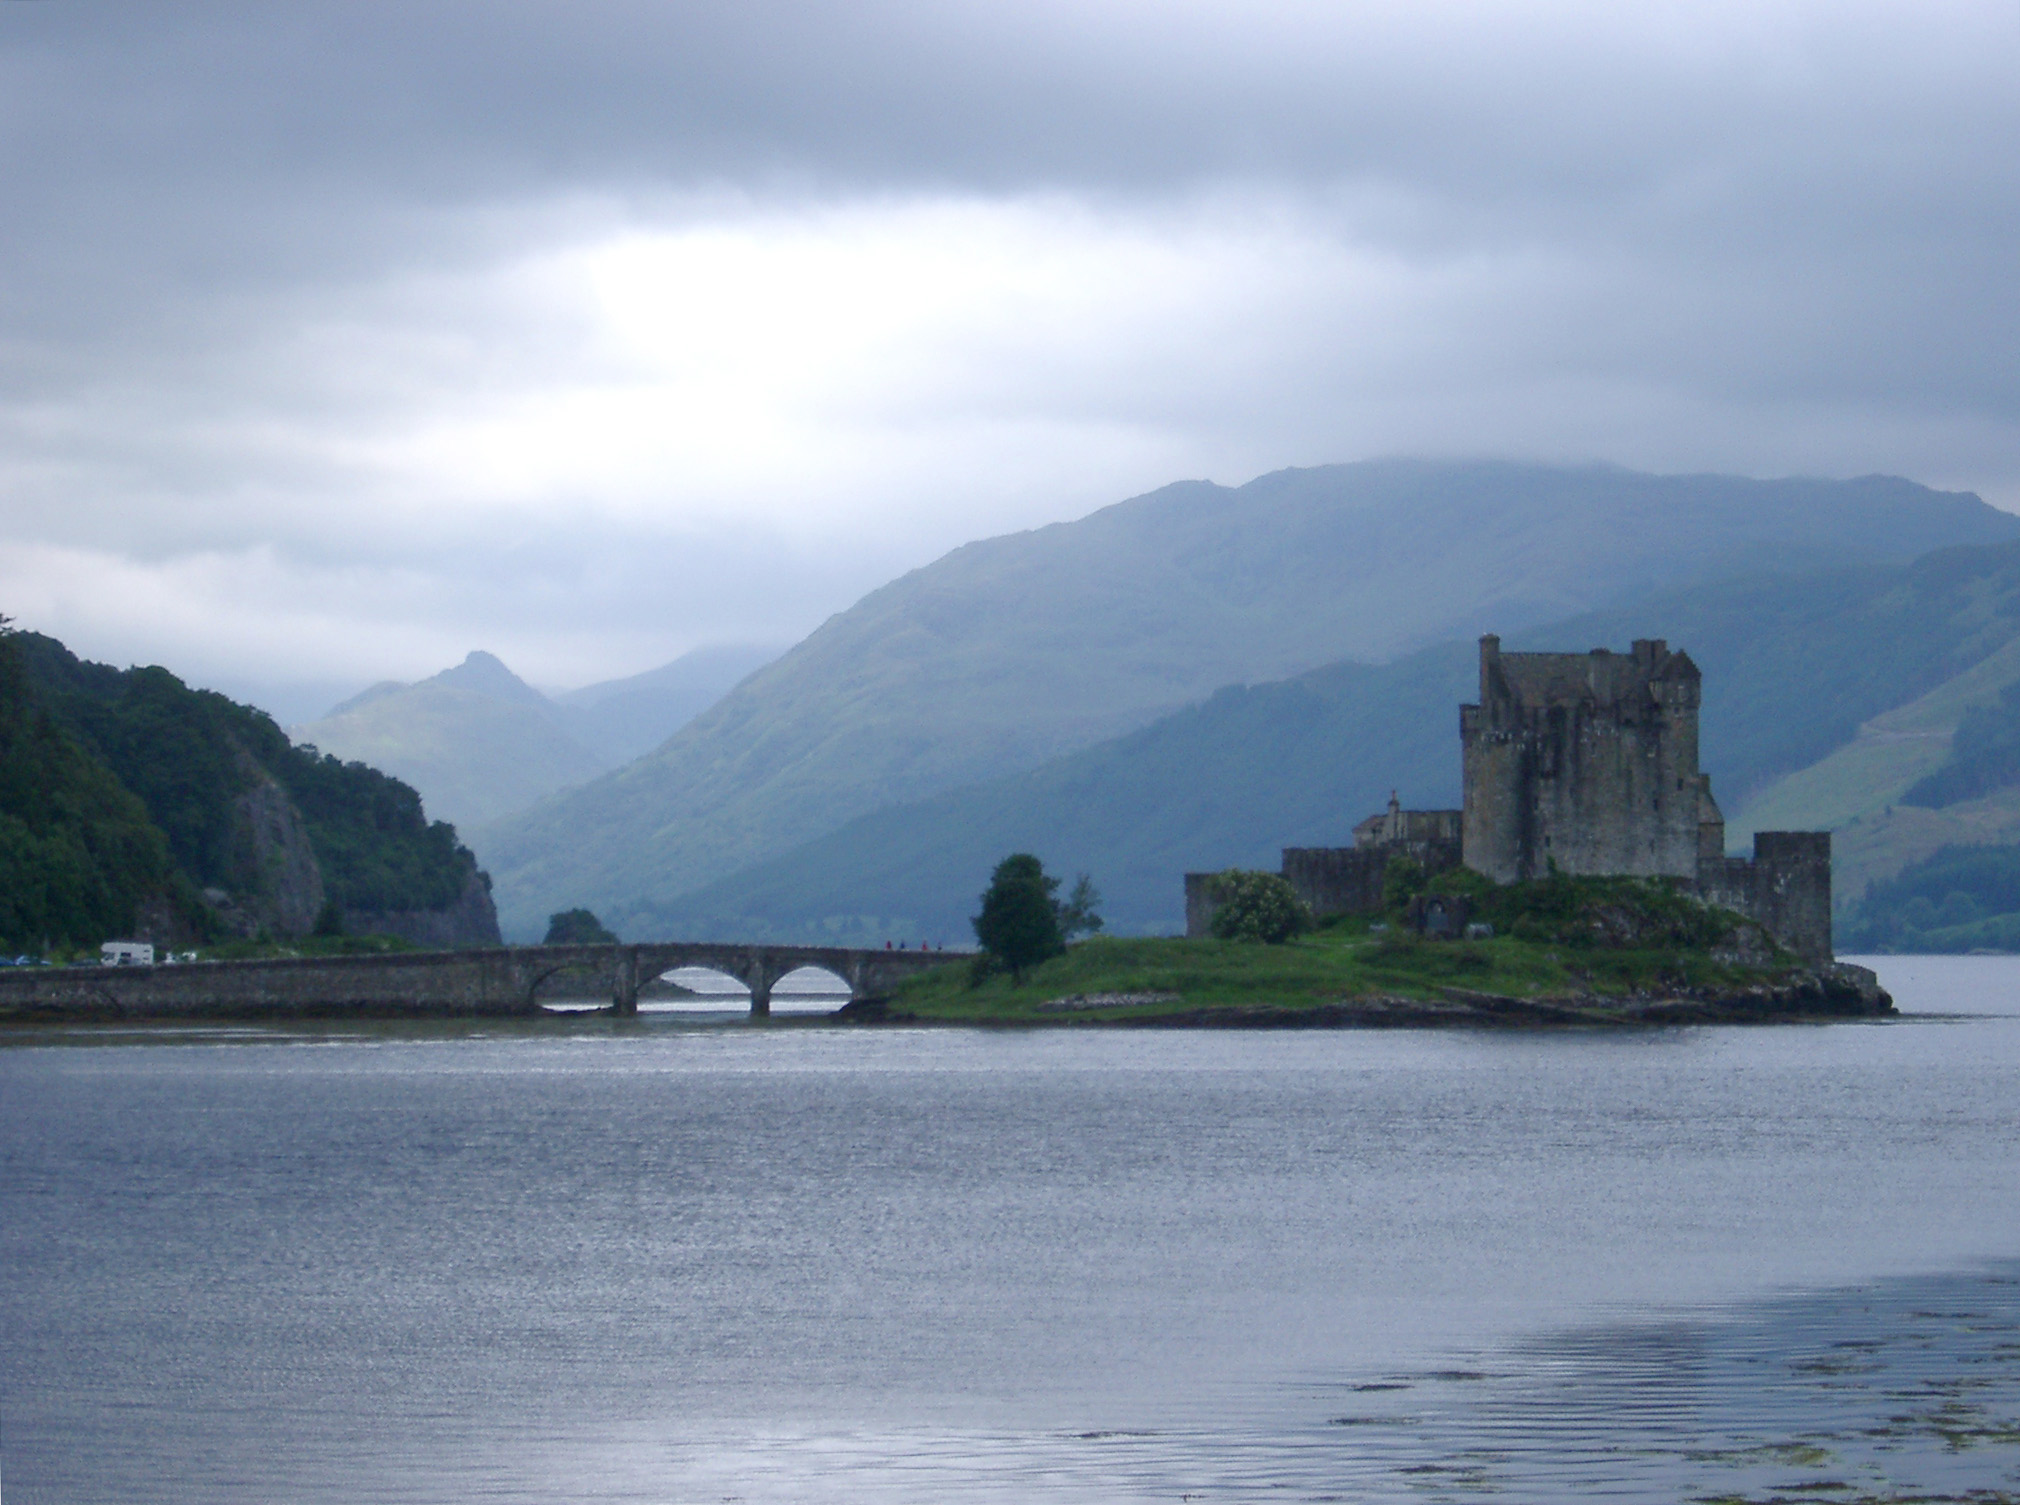 Eilean Donan castle on an island in Loch Duich, Scotland with its old arched bridge connecting it to the mainland